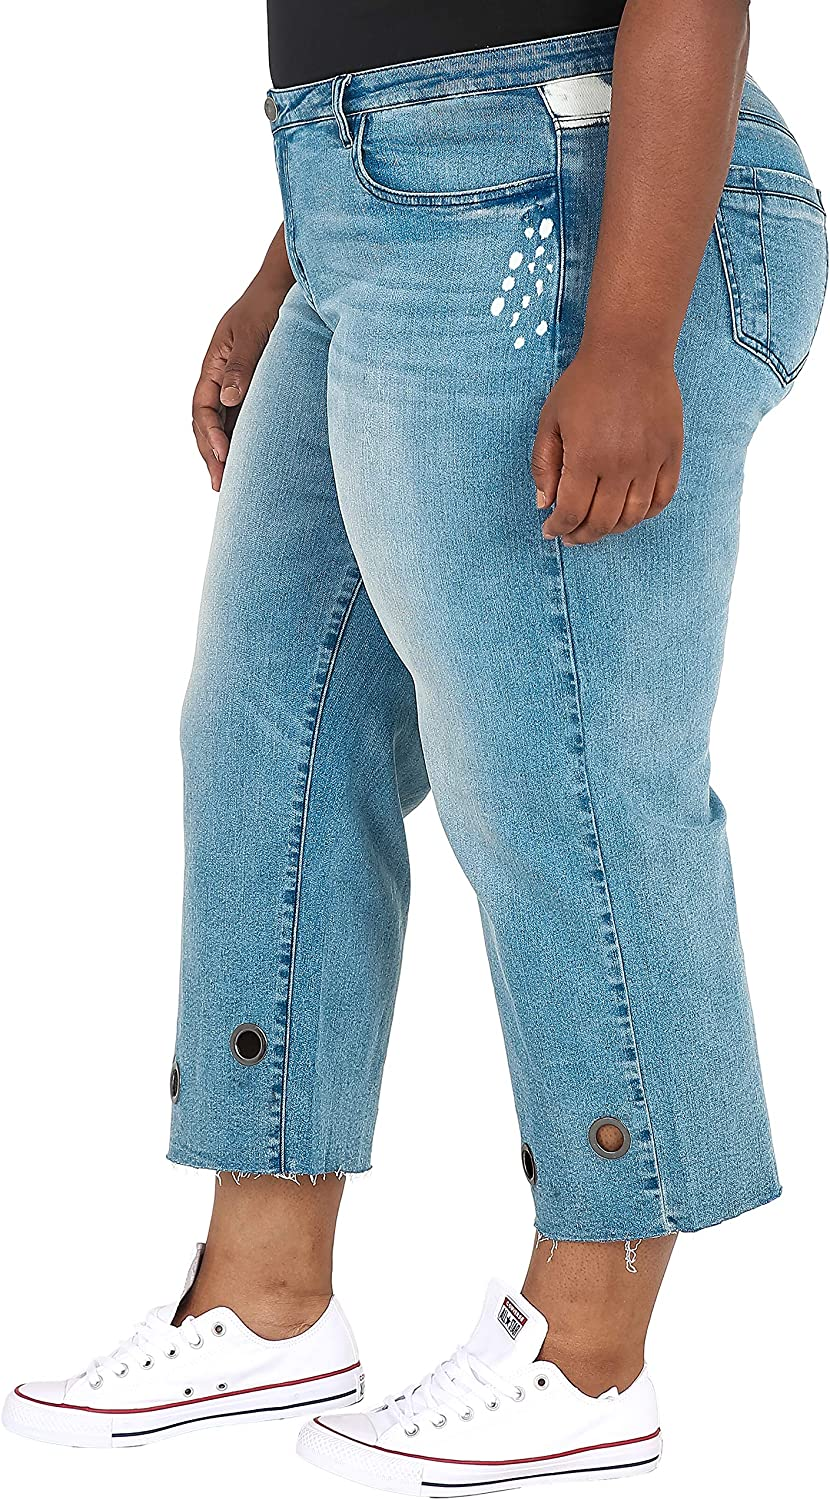 Poetic Justice Plus Size Curvy Women's Light Wash Grommet Cropped Mom Jeans